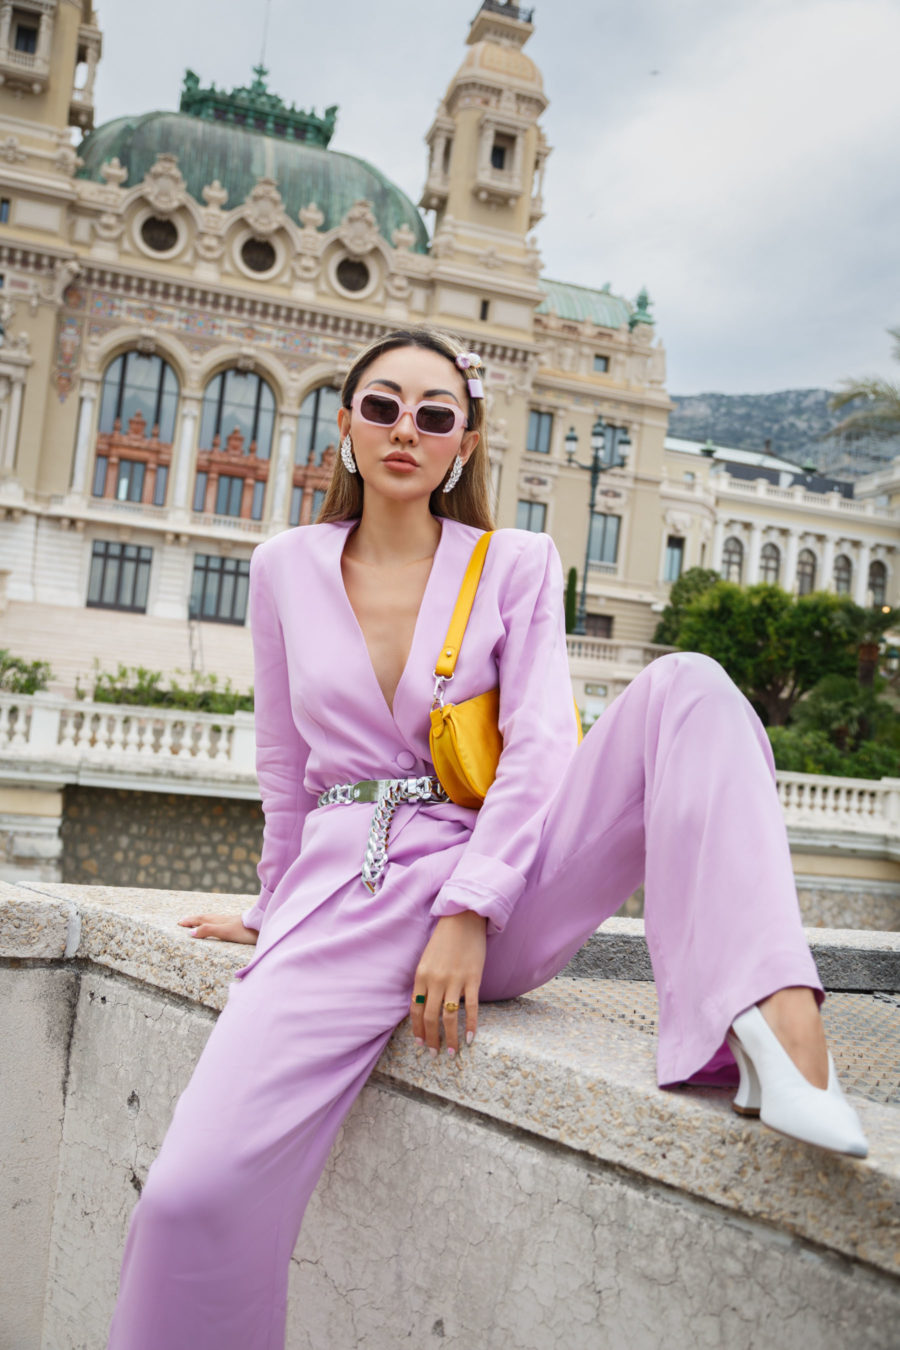 fashion blogger jessica wang wears lavender suit showcasing spring color trends // Jessica Wang - Notjessfashion.com